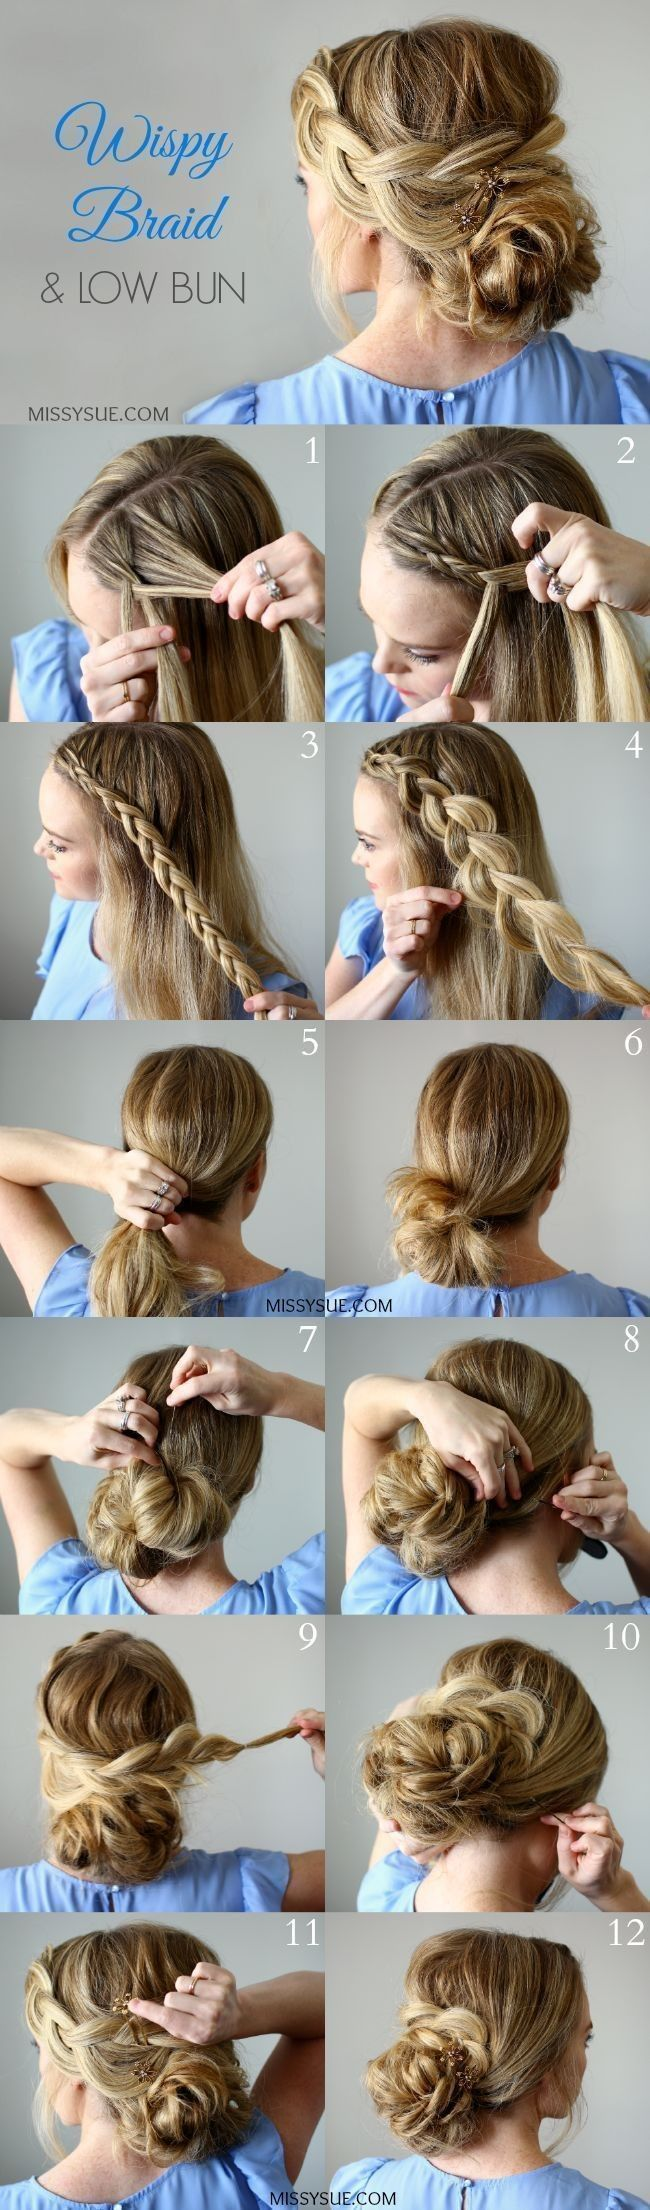 Beautiful simple hairstyle tutorials for long hair